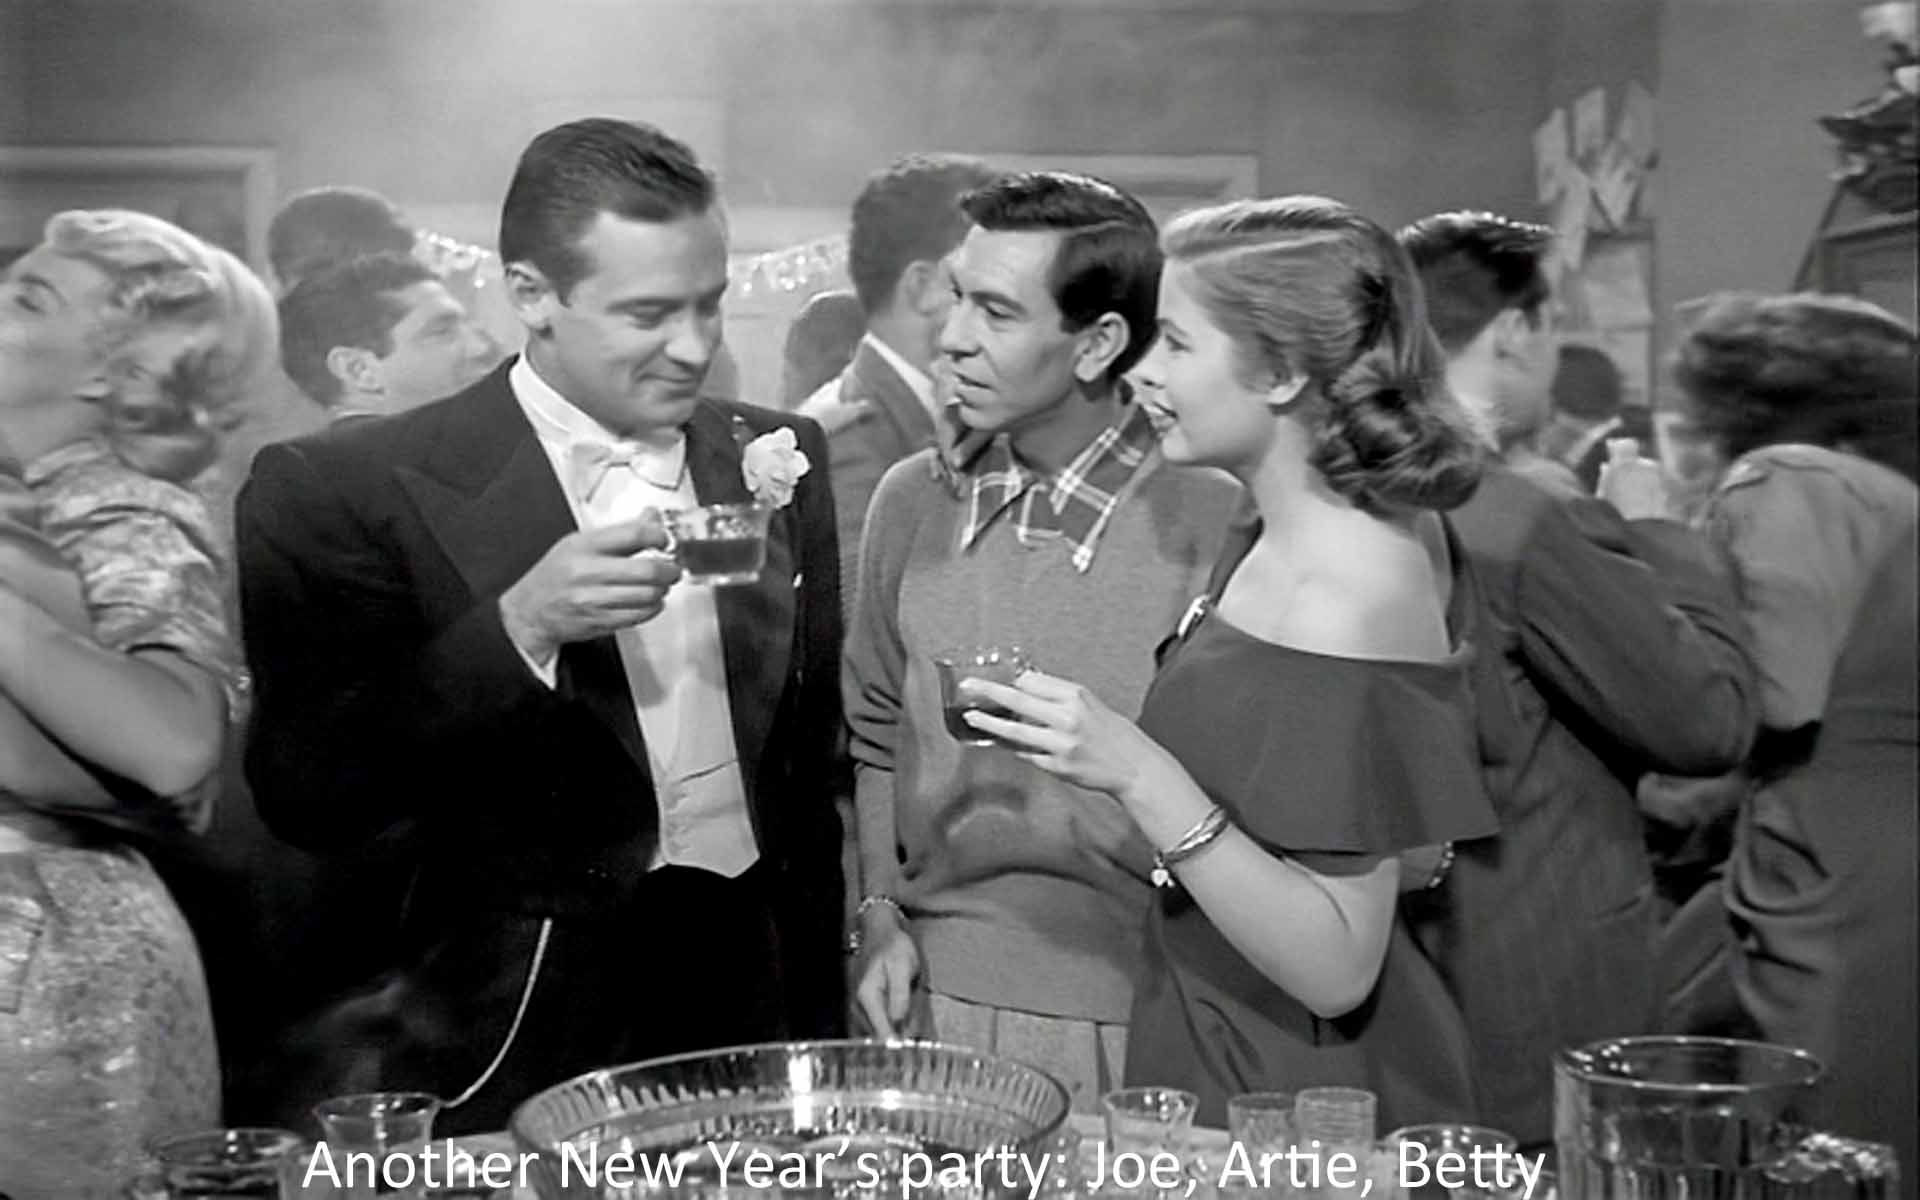 Another New Year's Eve party: Joe, Artie, and Betty